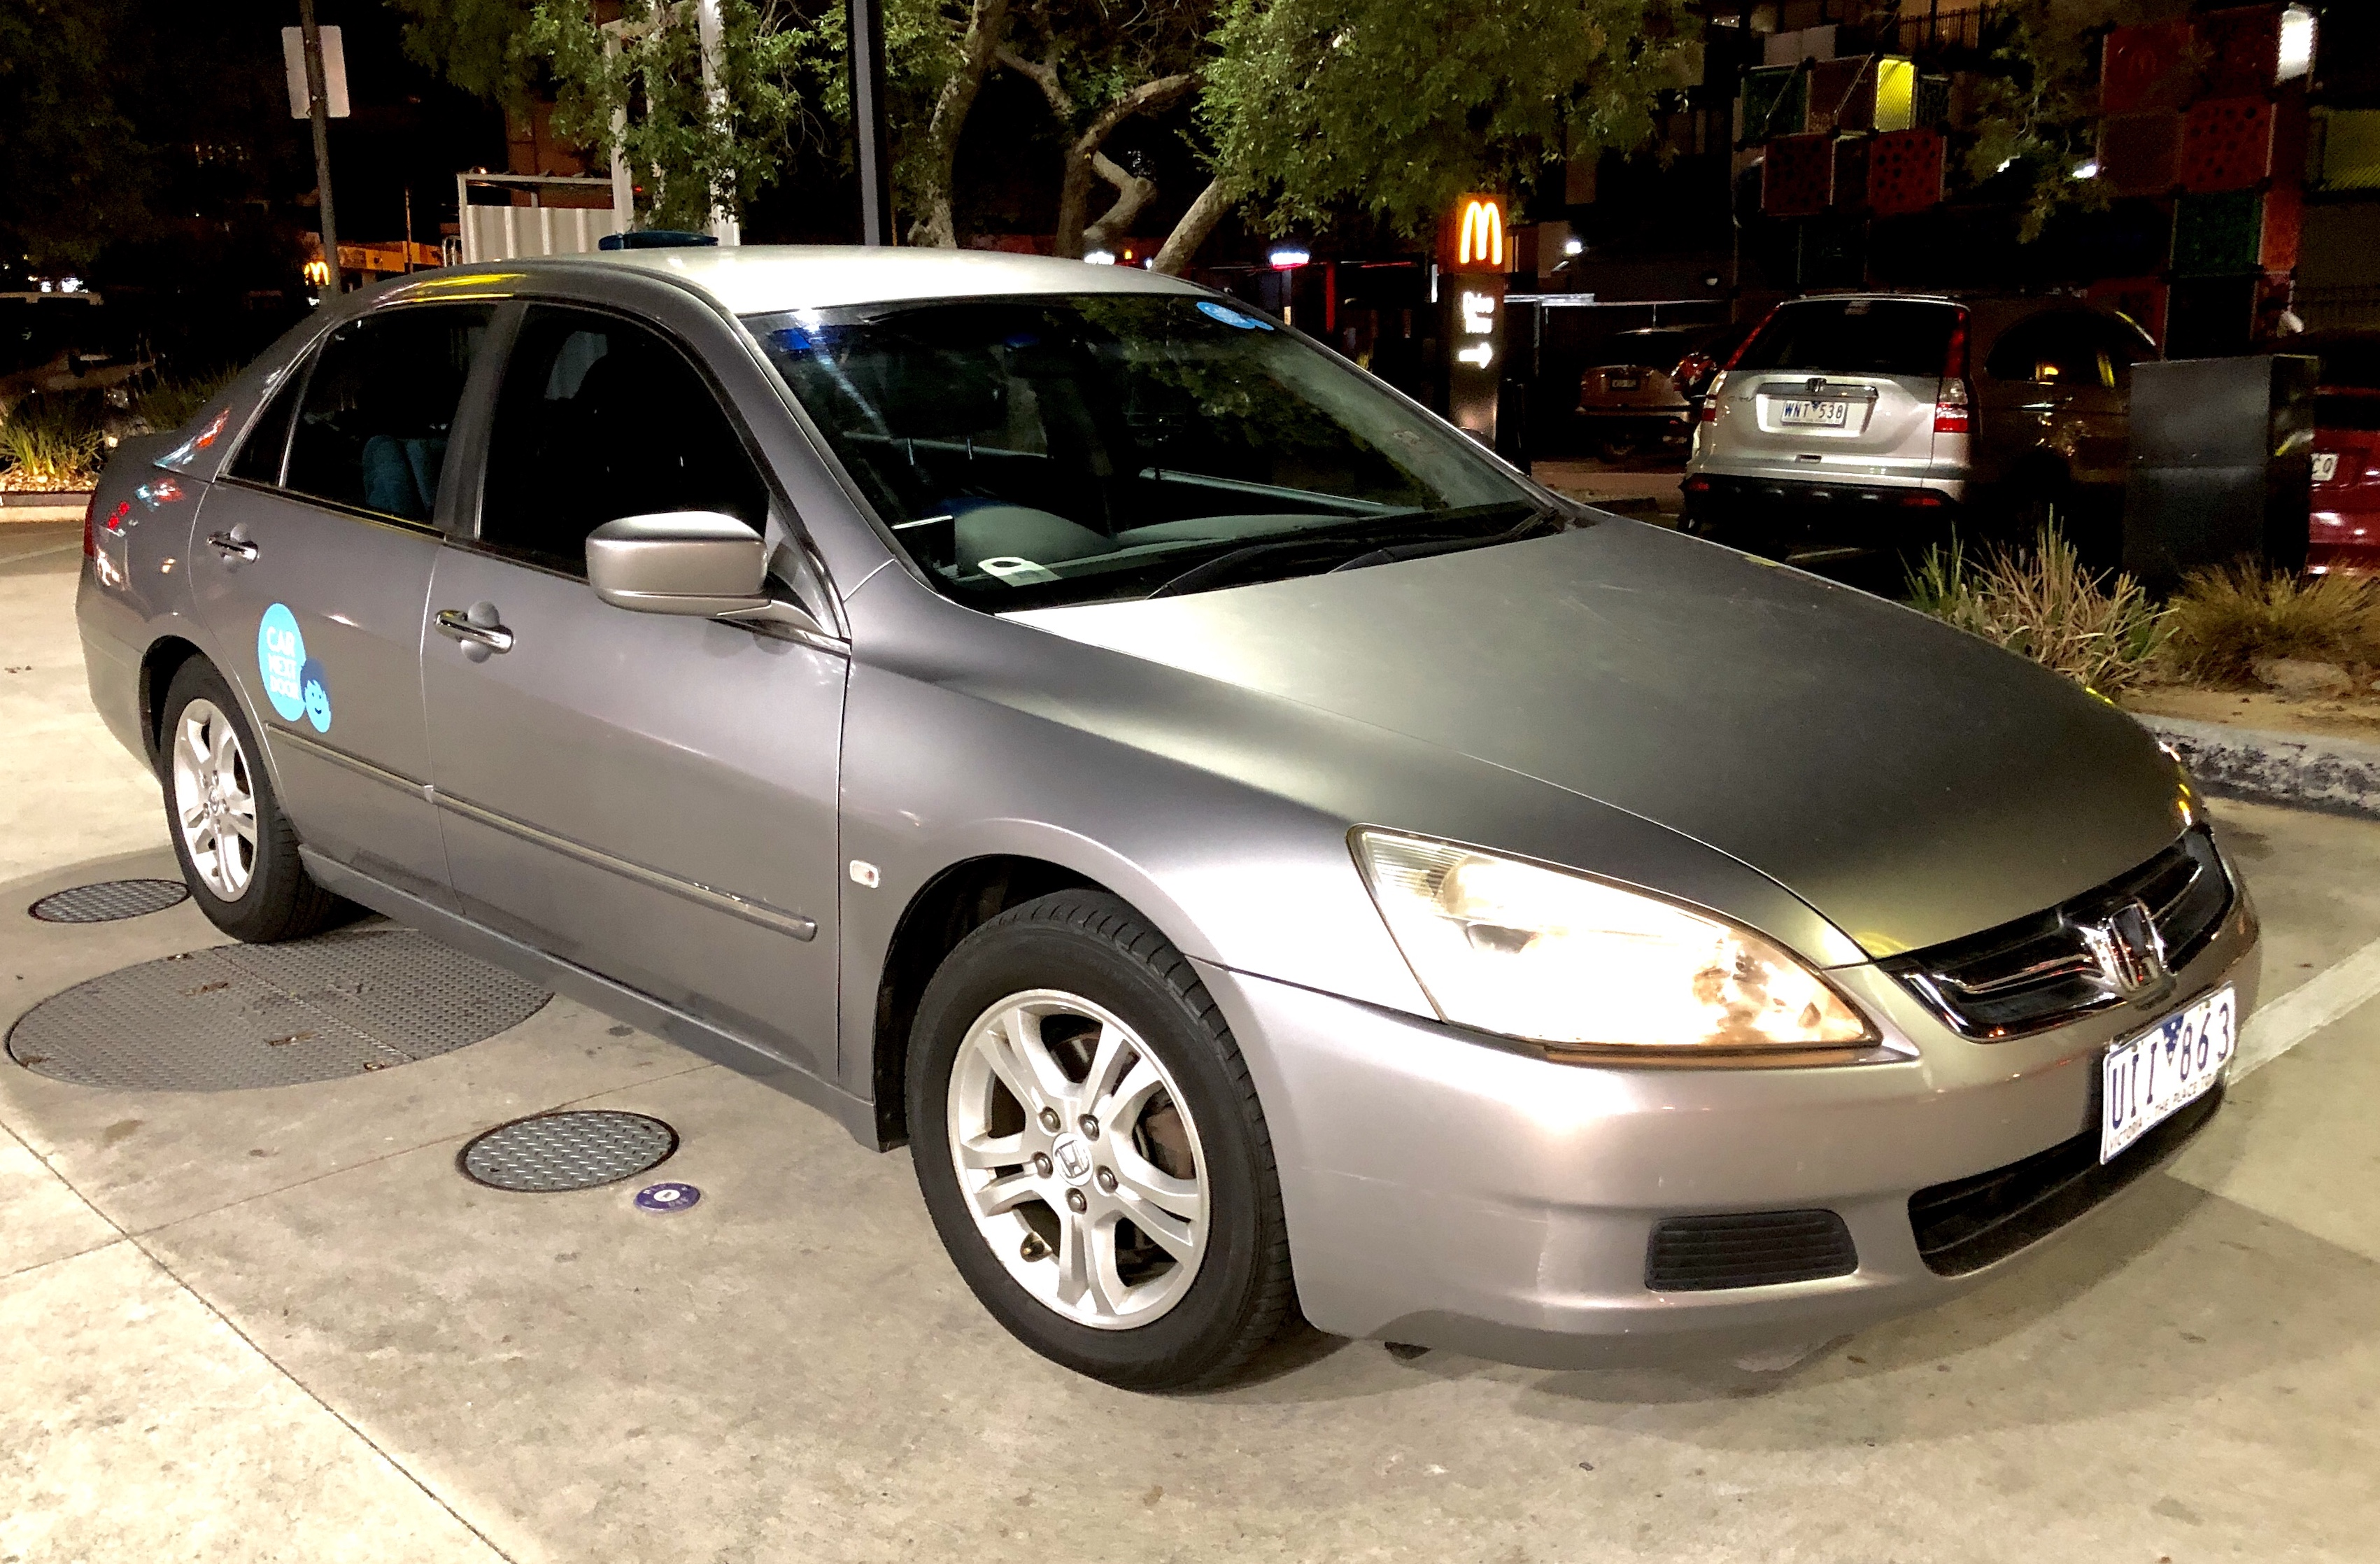 Picture of Zhi's 2006 Honda Accord